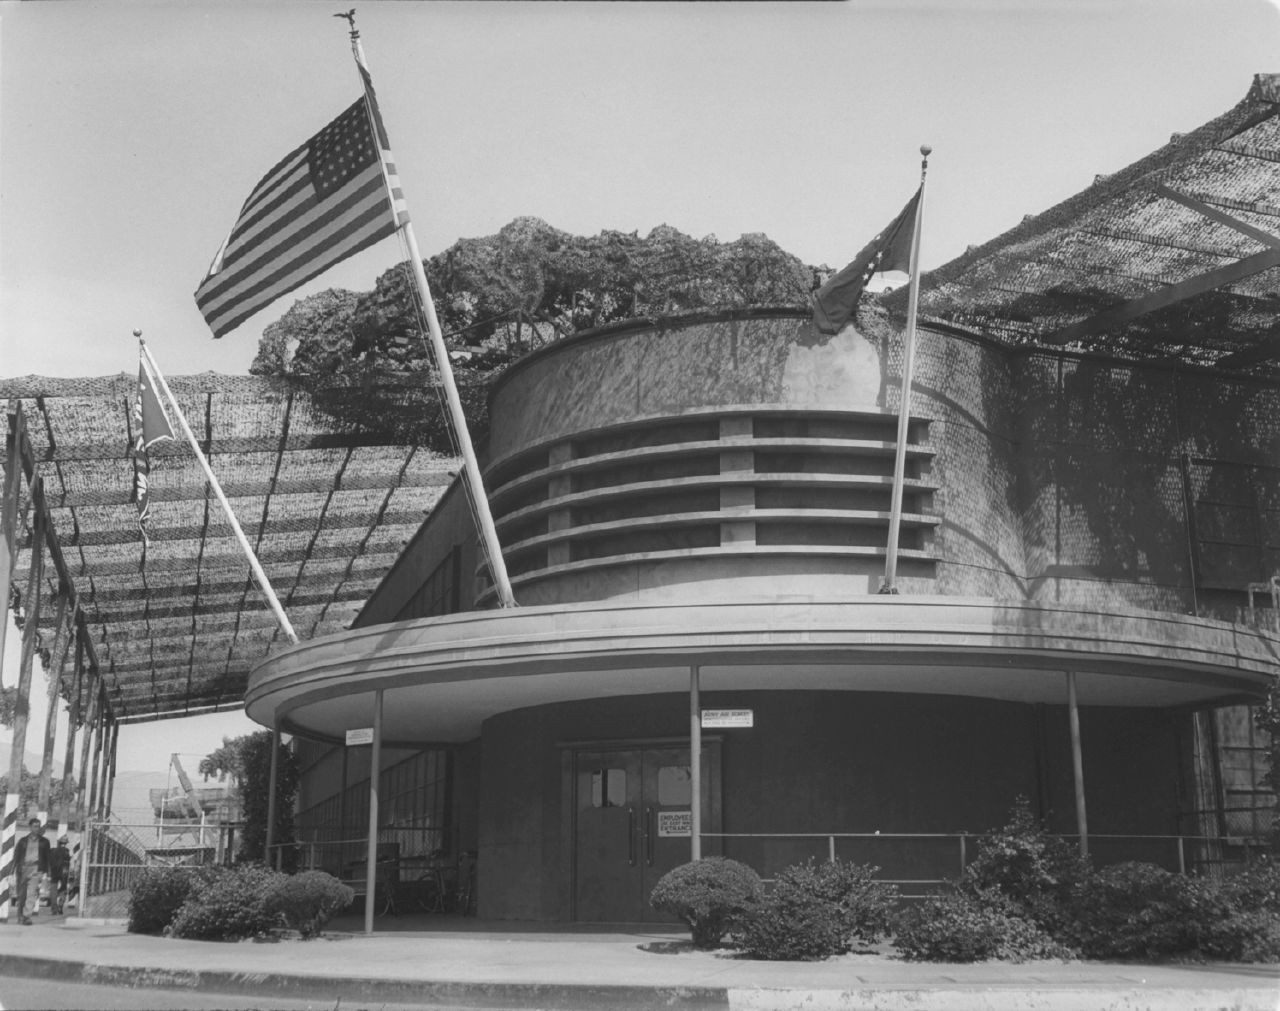 The exterior of Building 61, Plant A-1, at the Union Air Terminal in Burbank, California during WWII.